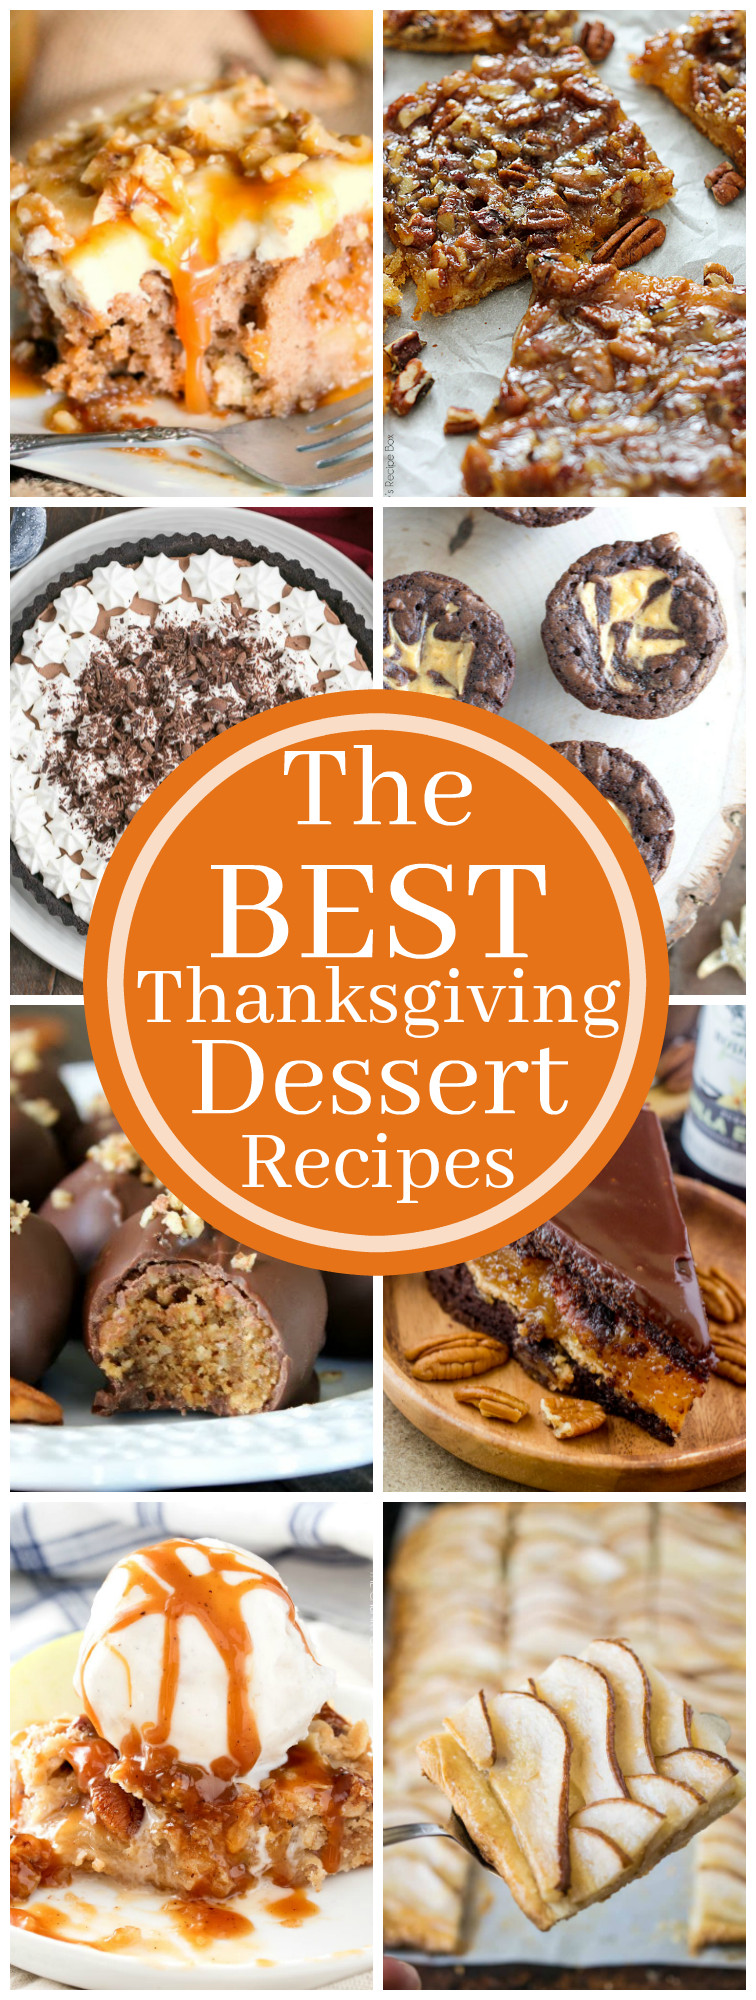 Thanksgiving Dessert Ideas  The Best Thanksgiving Desserts Savory Experiments